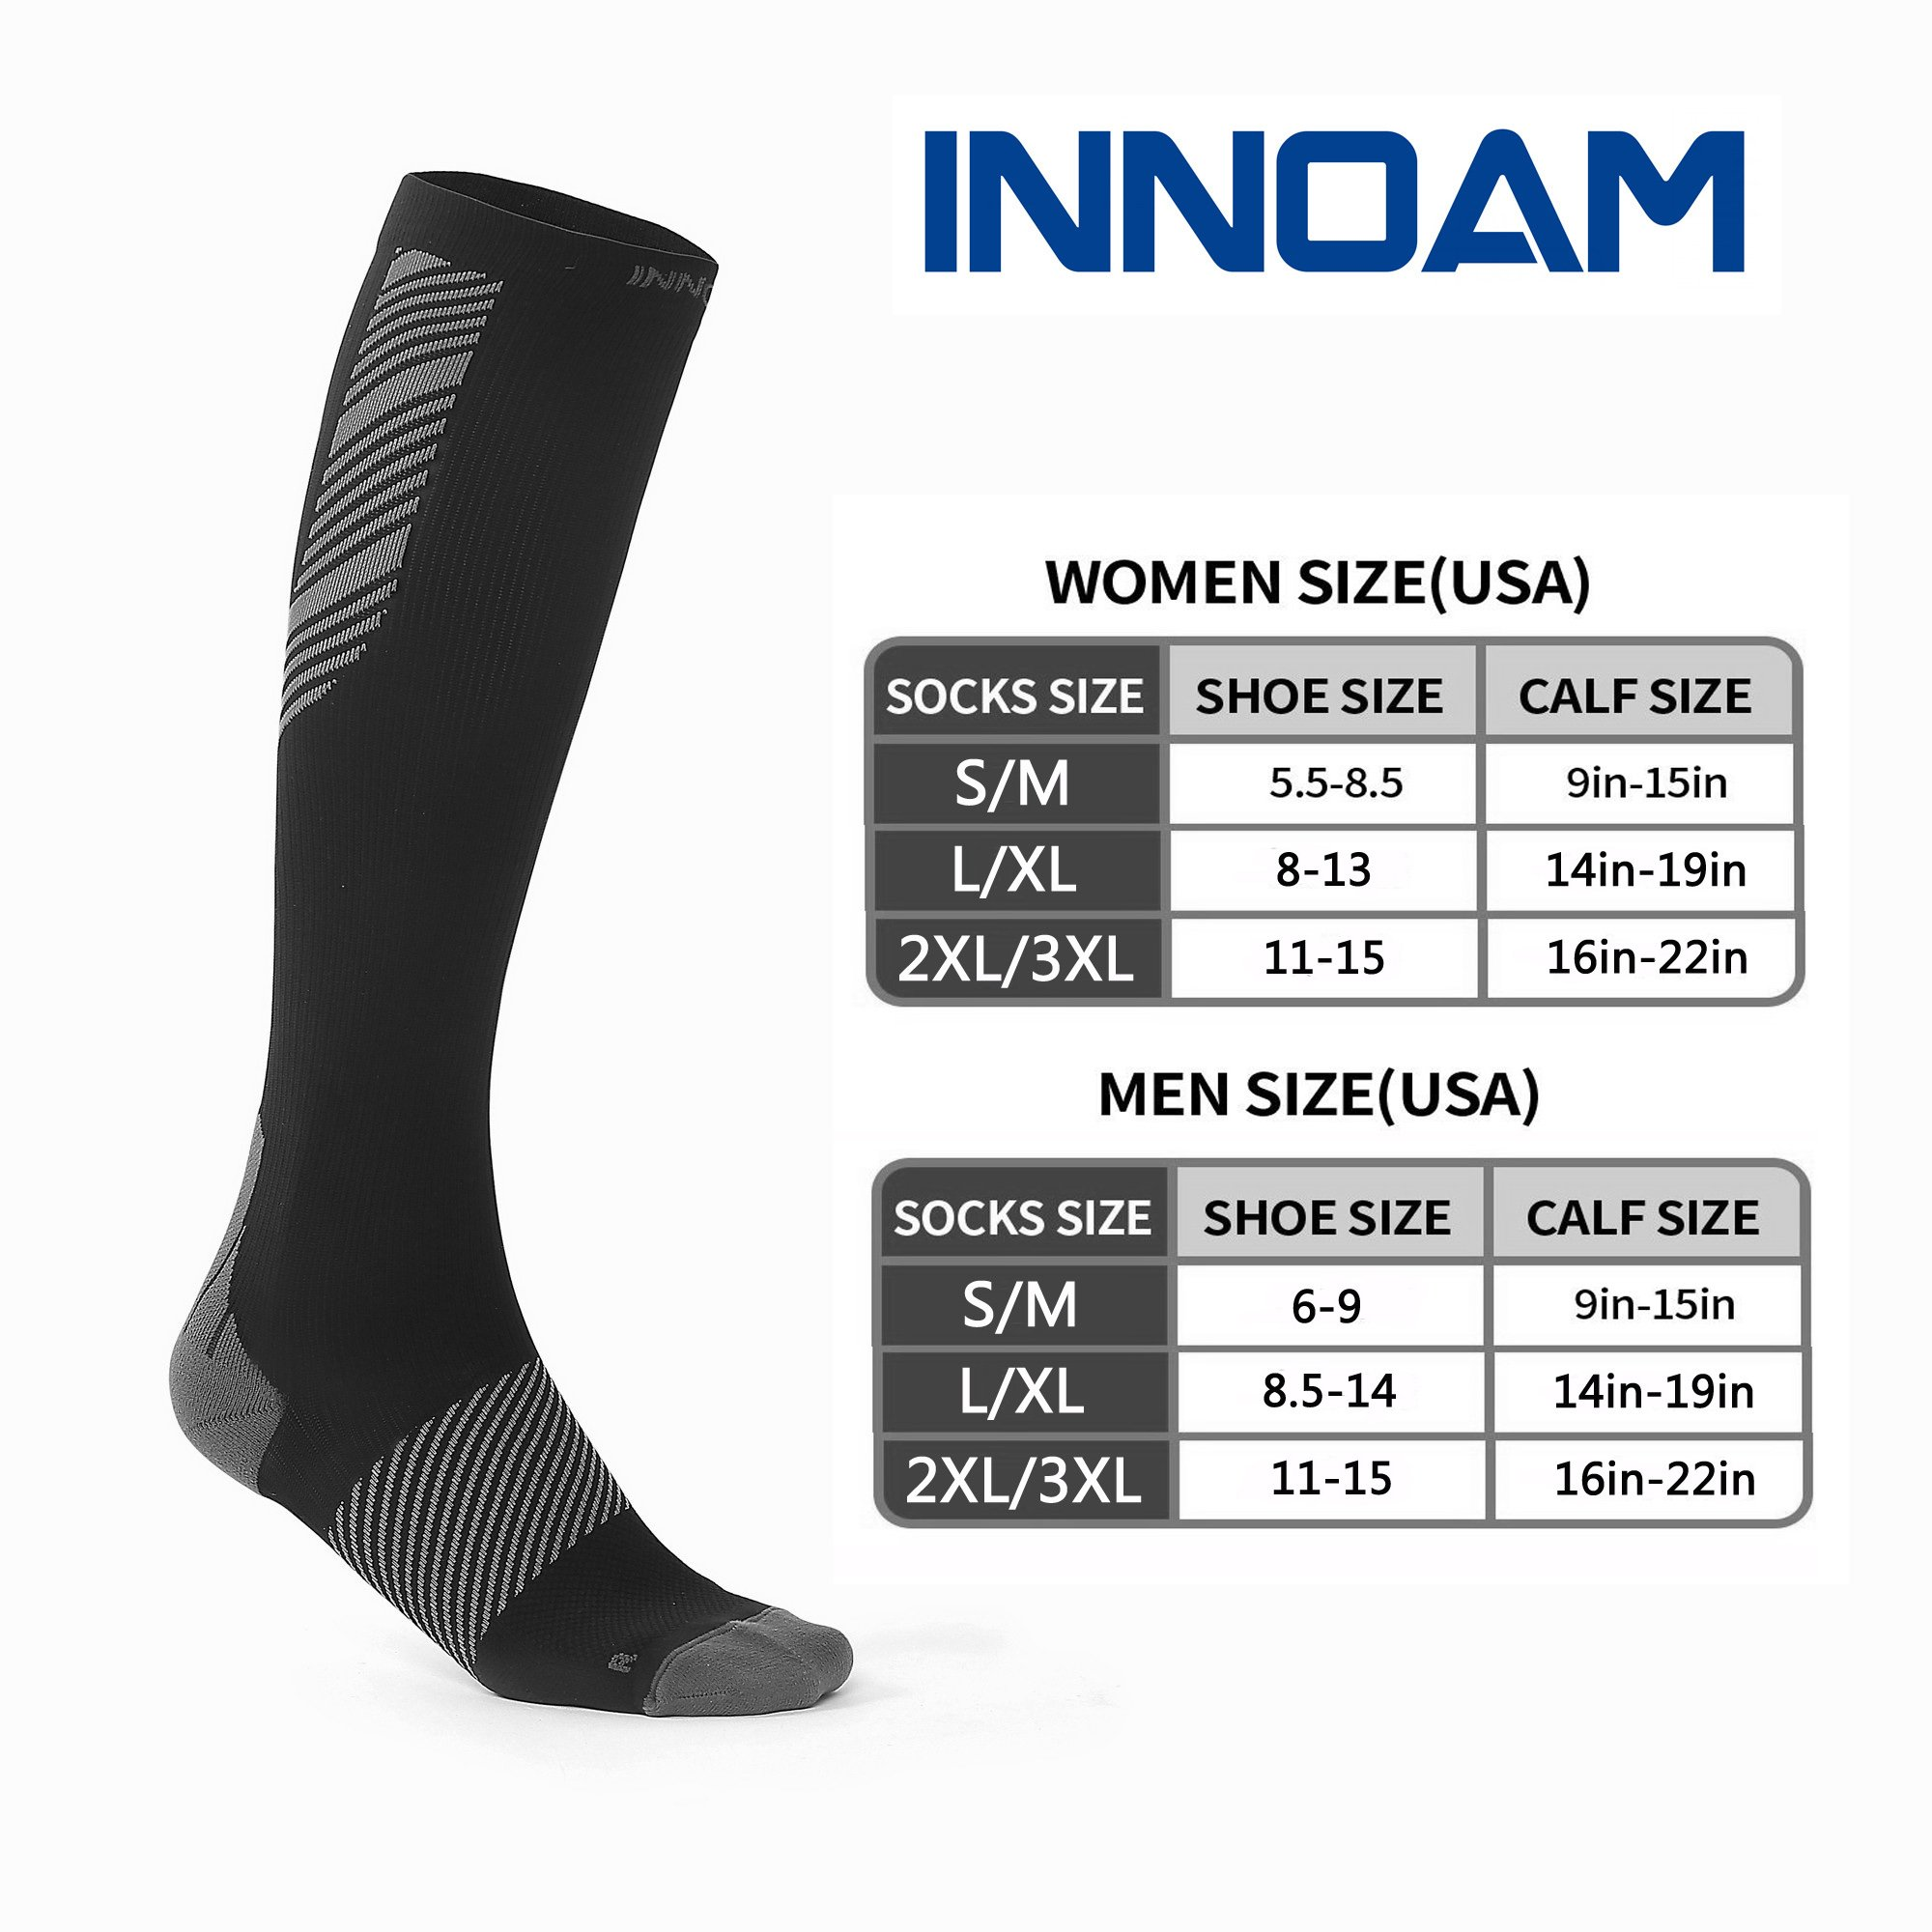 Compression Socks for Men & Women Best Stockings for Nurses, Workout, Running, Medical, Athletic, Edema, Diabetic, Pregnancy, Travel, Varicose Veins, Reduce Swelling, 20-30mmHg (Black Gray, 2XL/3XL) by Innoam (Image #5)